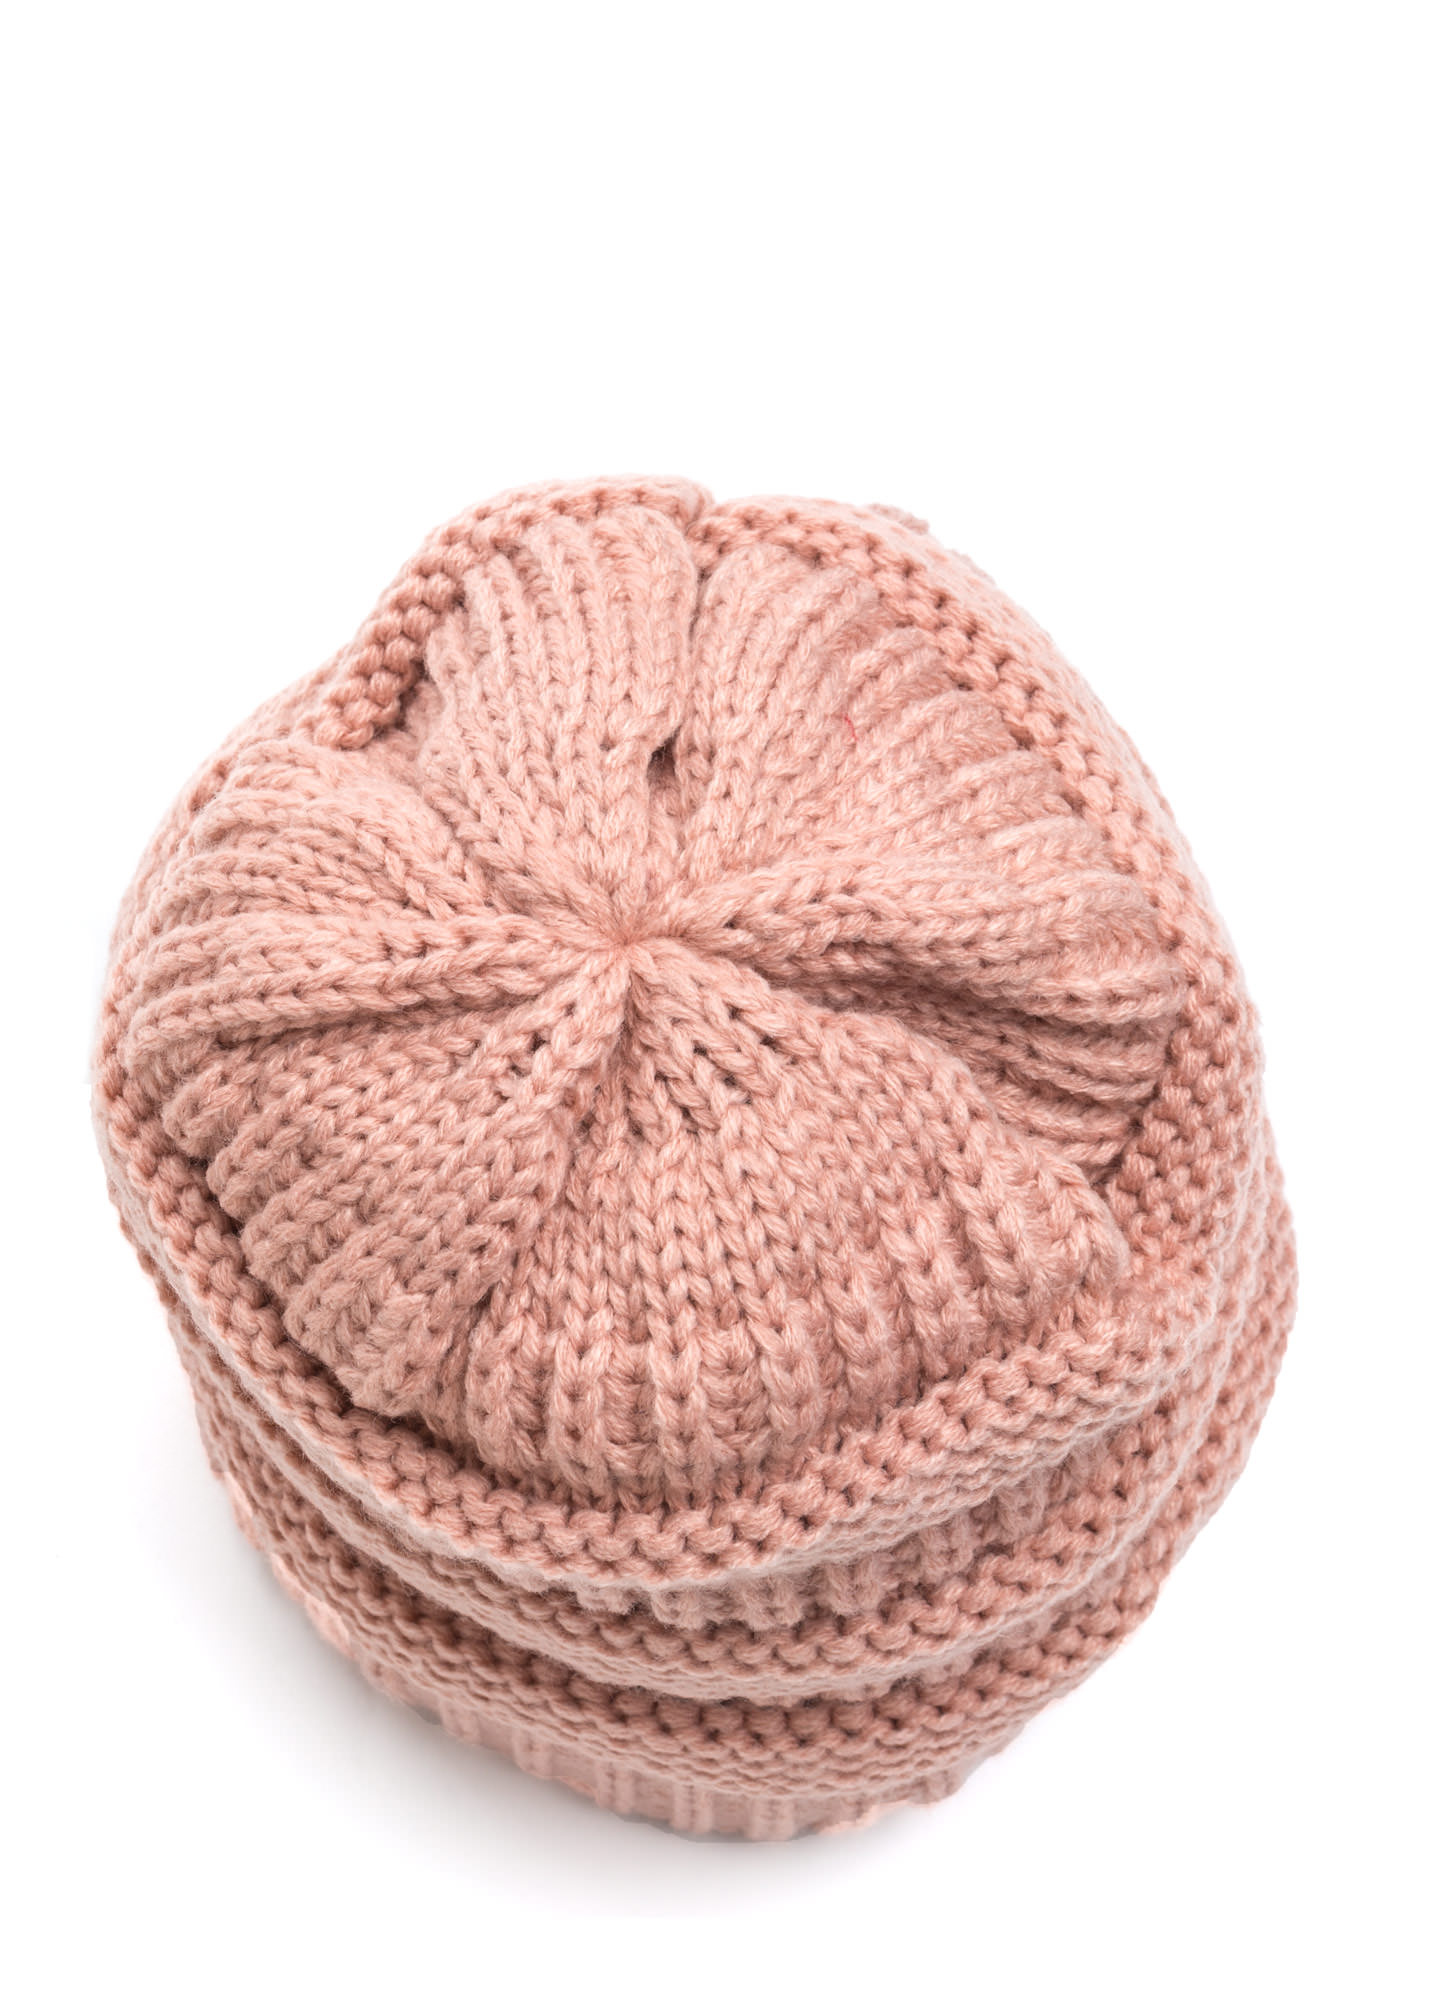 Cozy CC Cable Knit Beanie MAUVE (Final Sale)